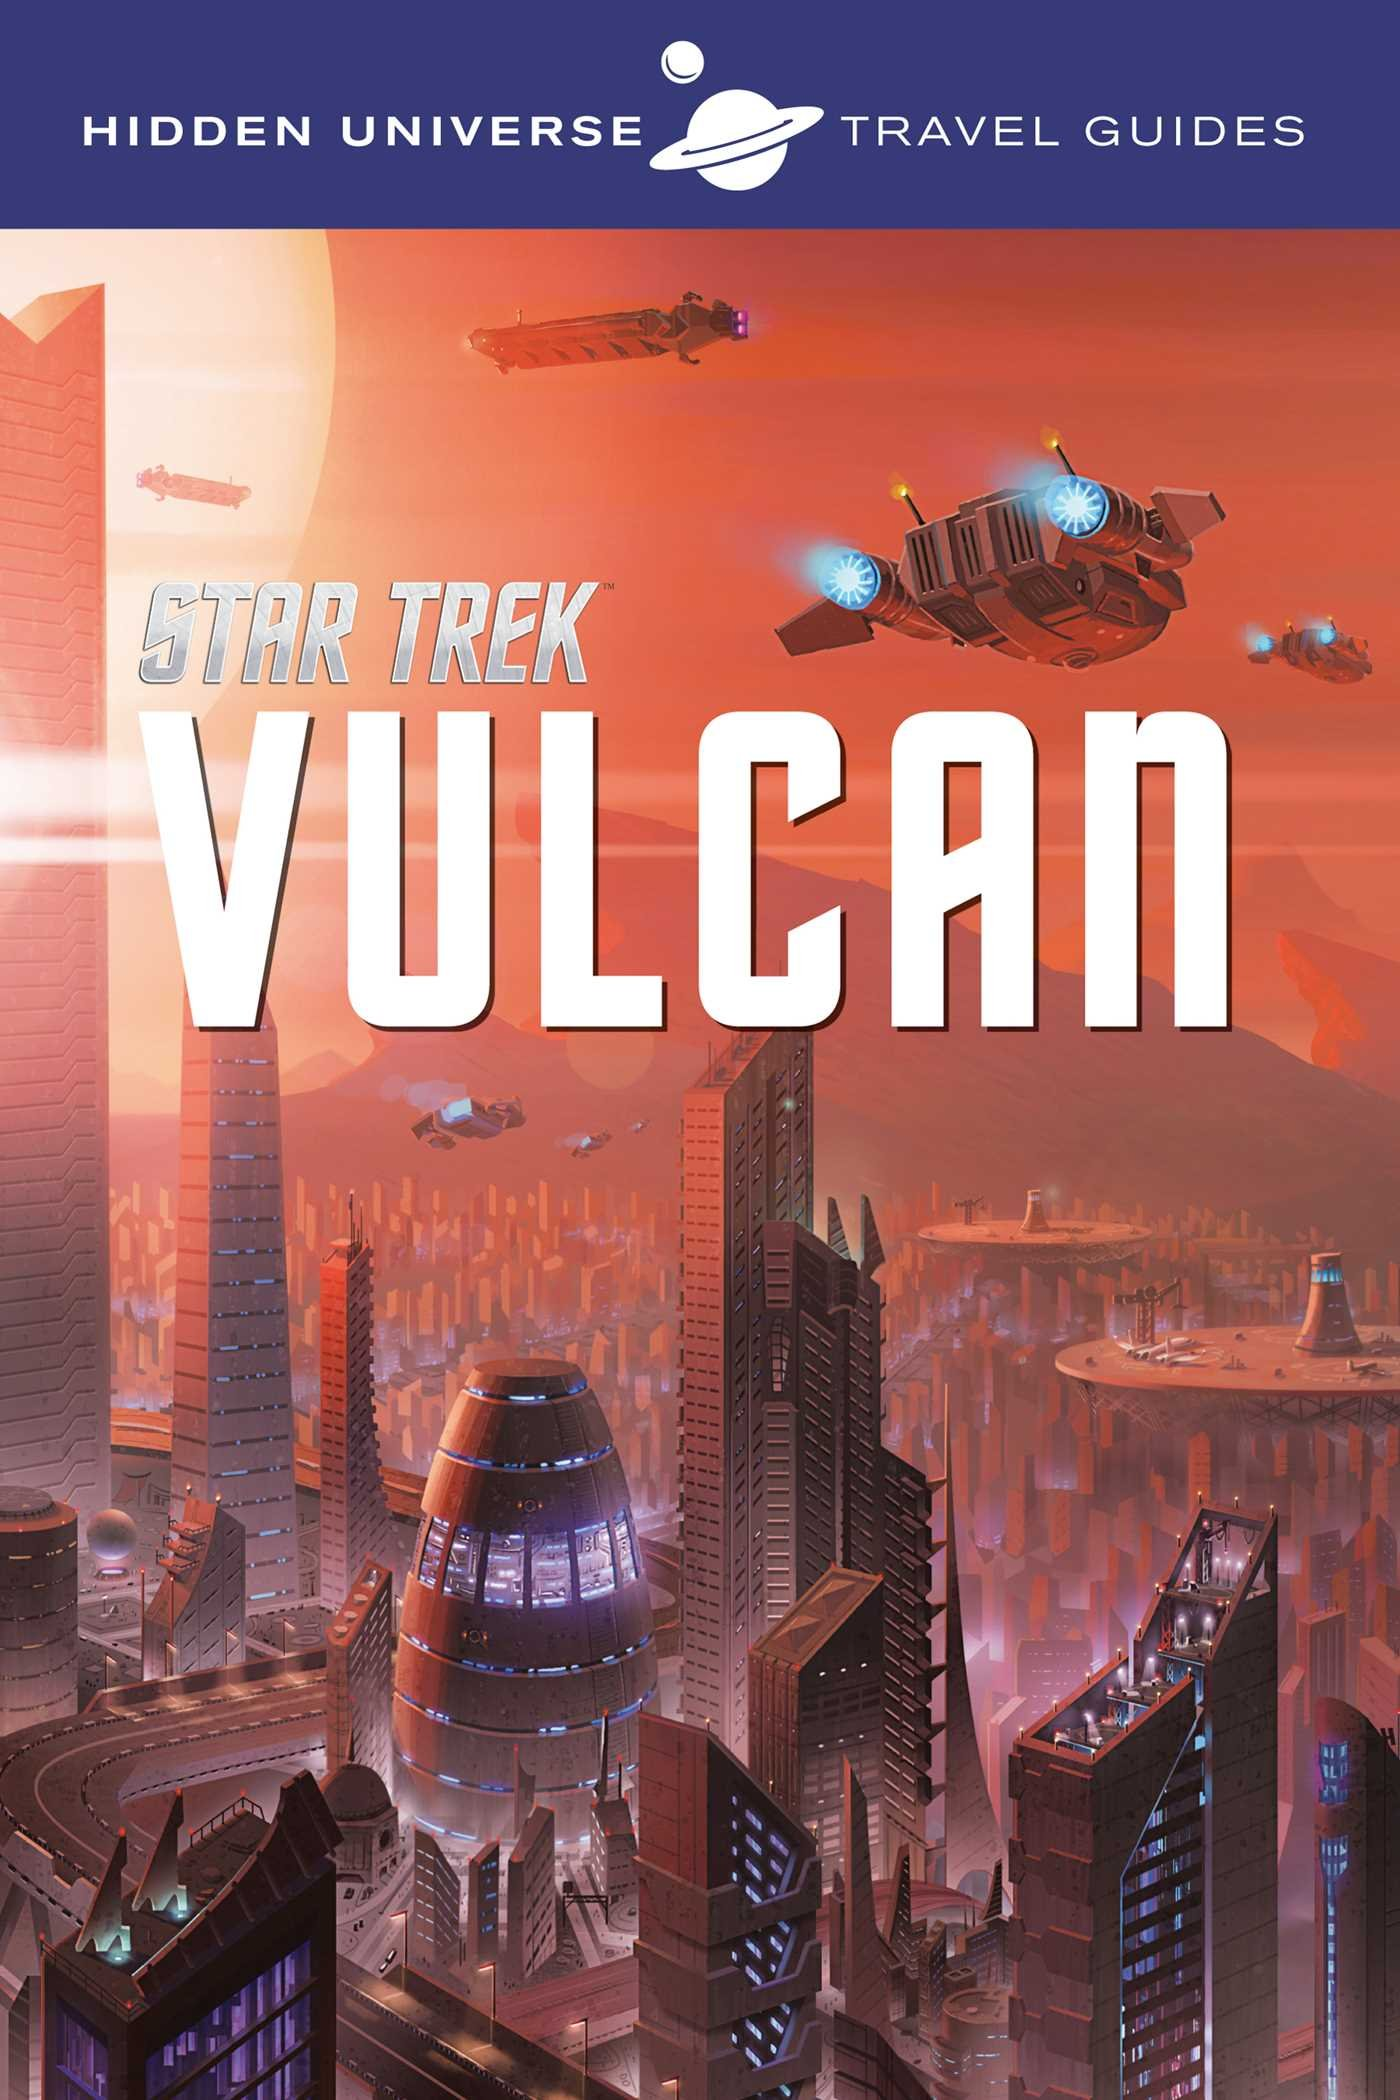 Hidden Universe Travel Guides Vulcan product image